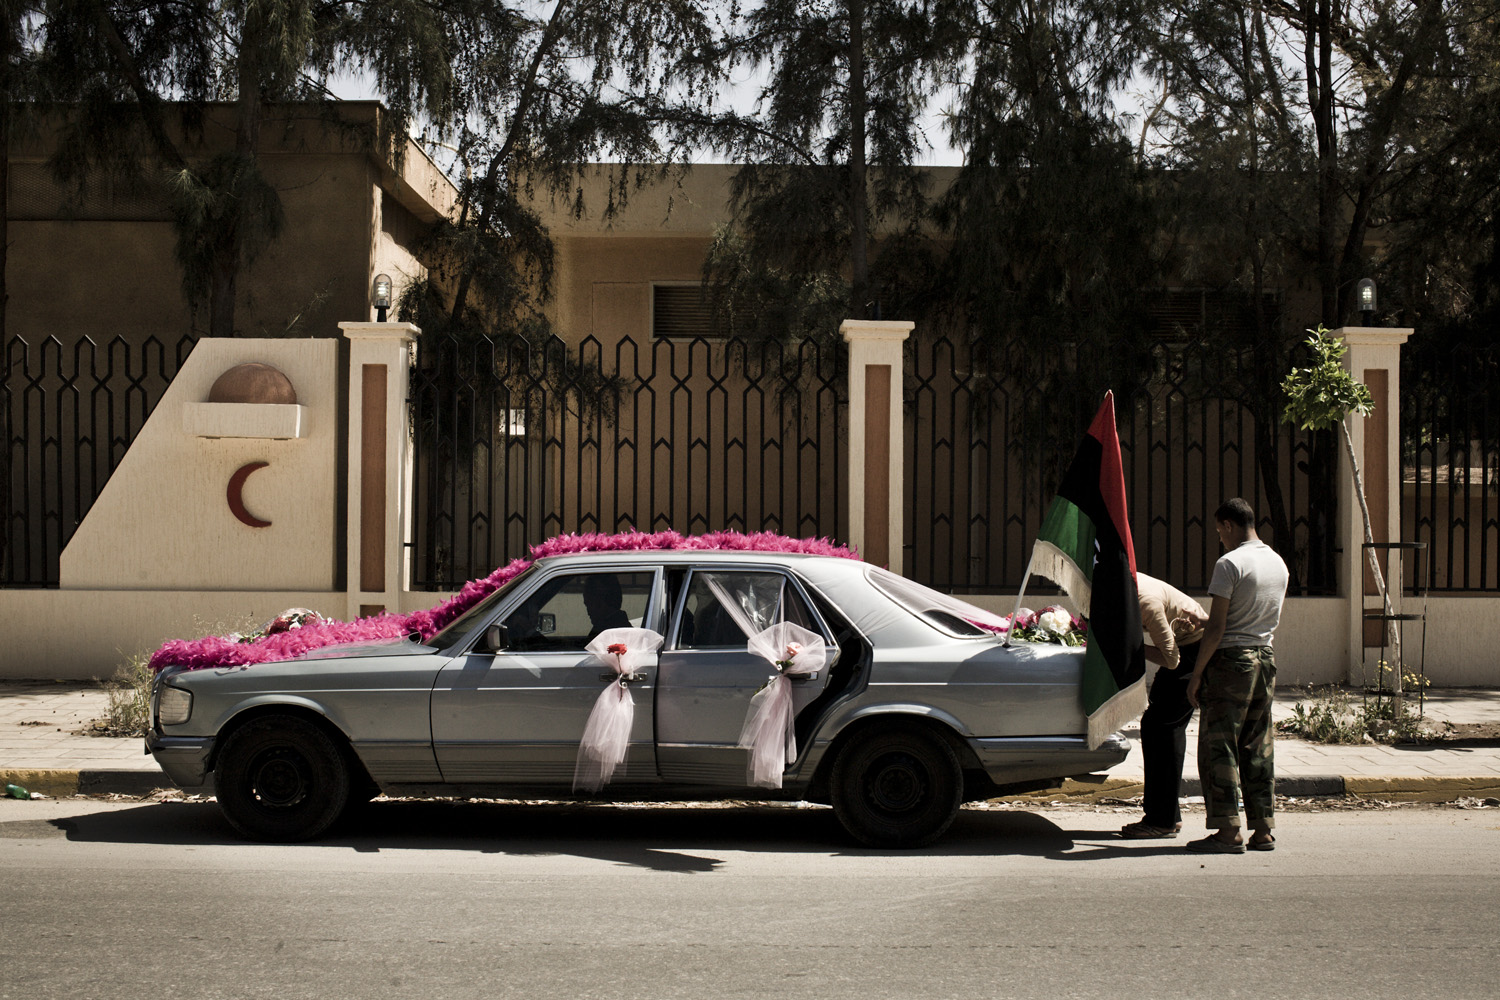 April 14, 2011. A car being prepared for a wedding ceremony in Benghazi, Libya.